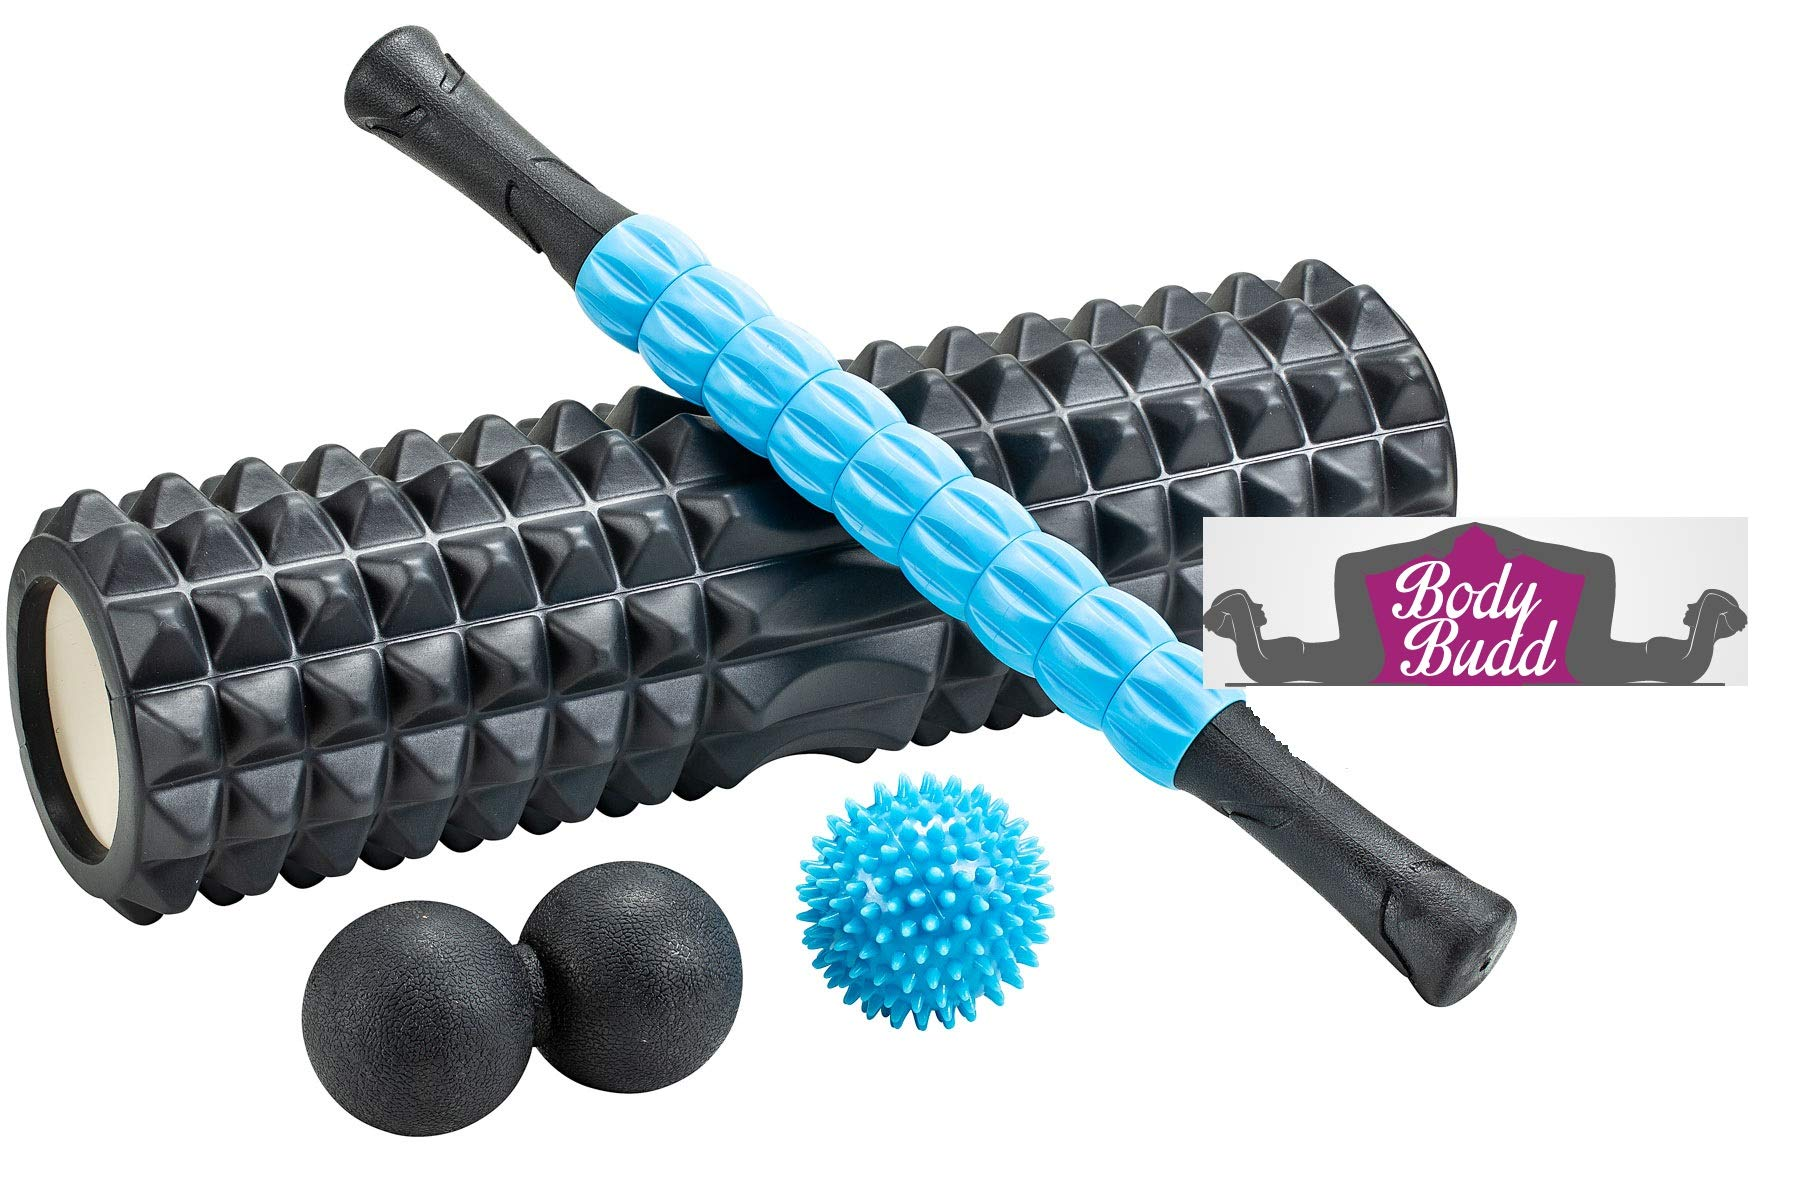 BodyBudd Foam Roller Set with Muscle Massage Stick, Large Peanut Ball & Rubber Lacrosse Ball in Carrying Bag, High Density Rolling Massager, Complete Kit for Myofascial Release Massage & Pain Relief